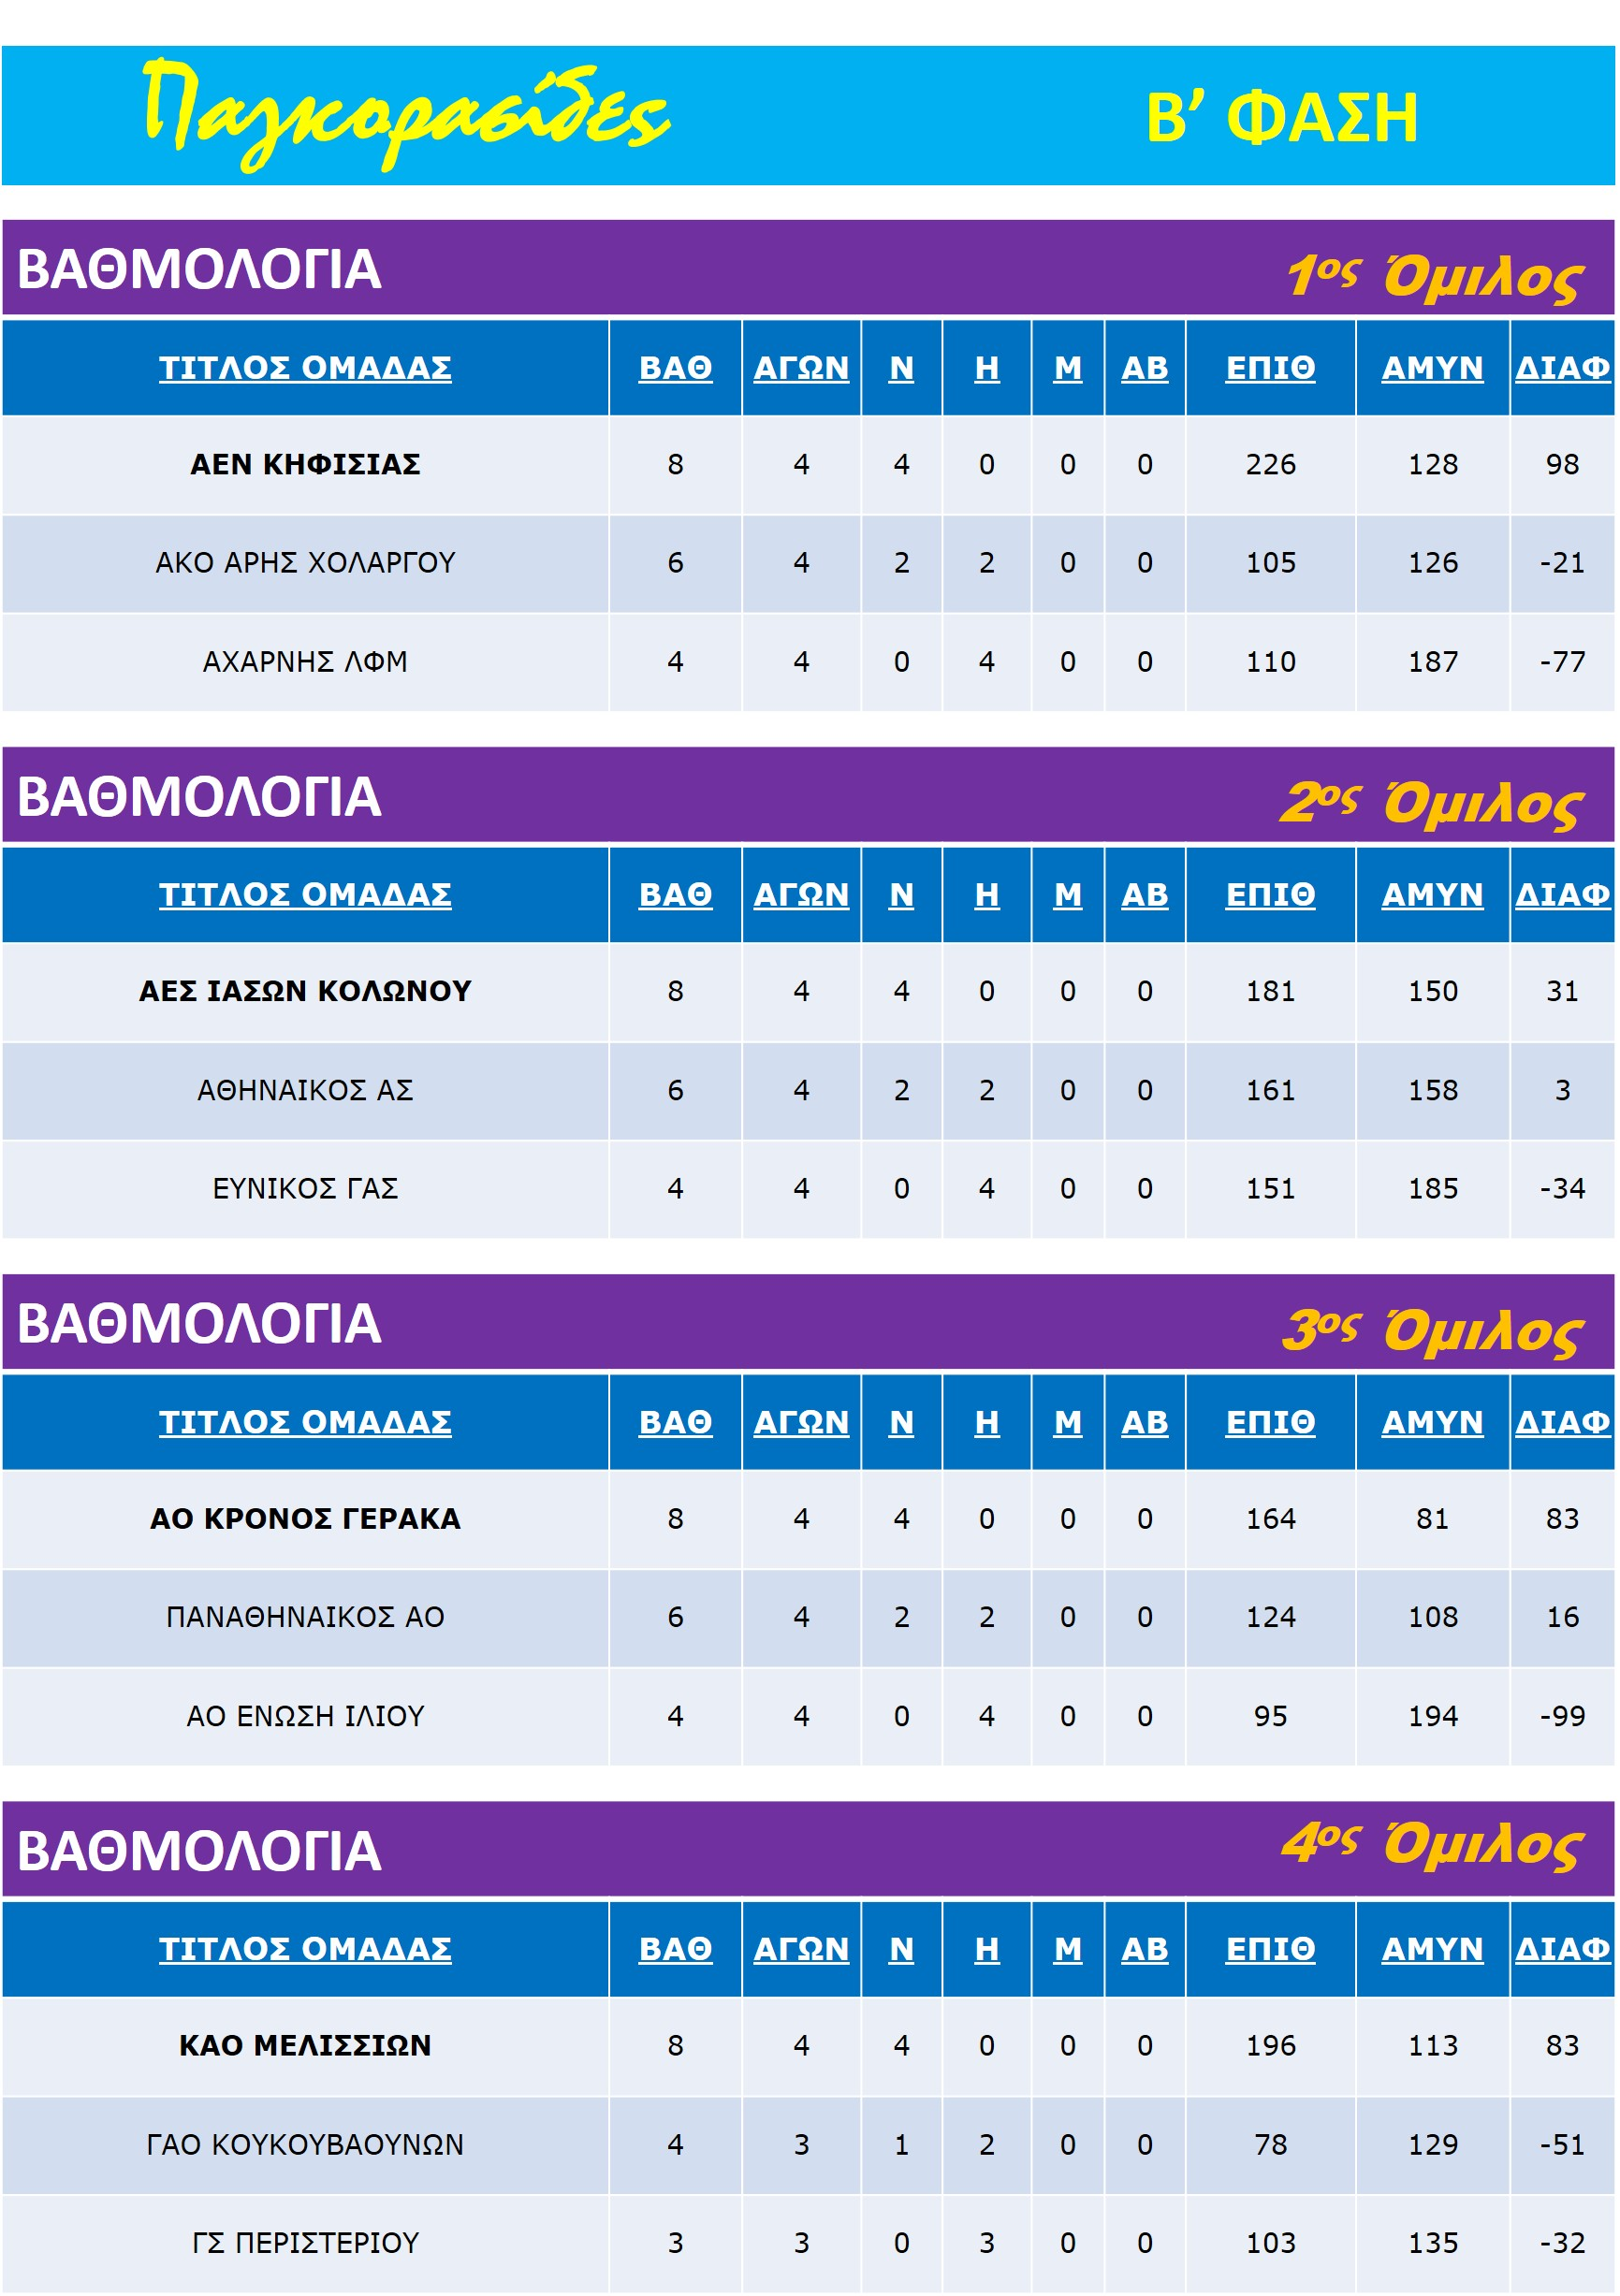 Pagkorasides_B_Rank_Table_All-Groups_T6